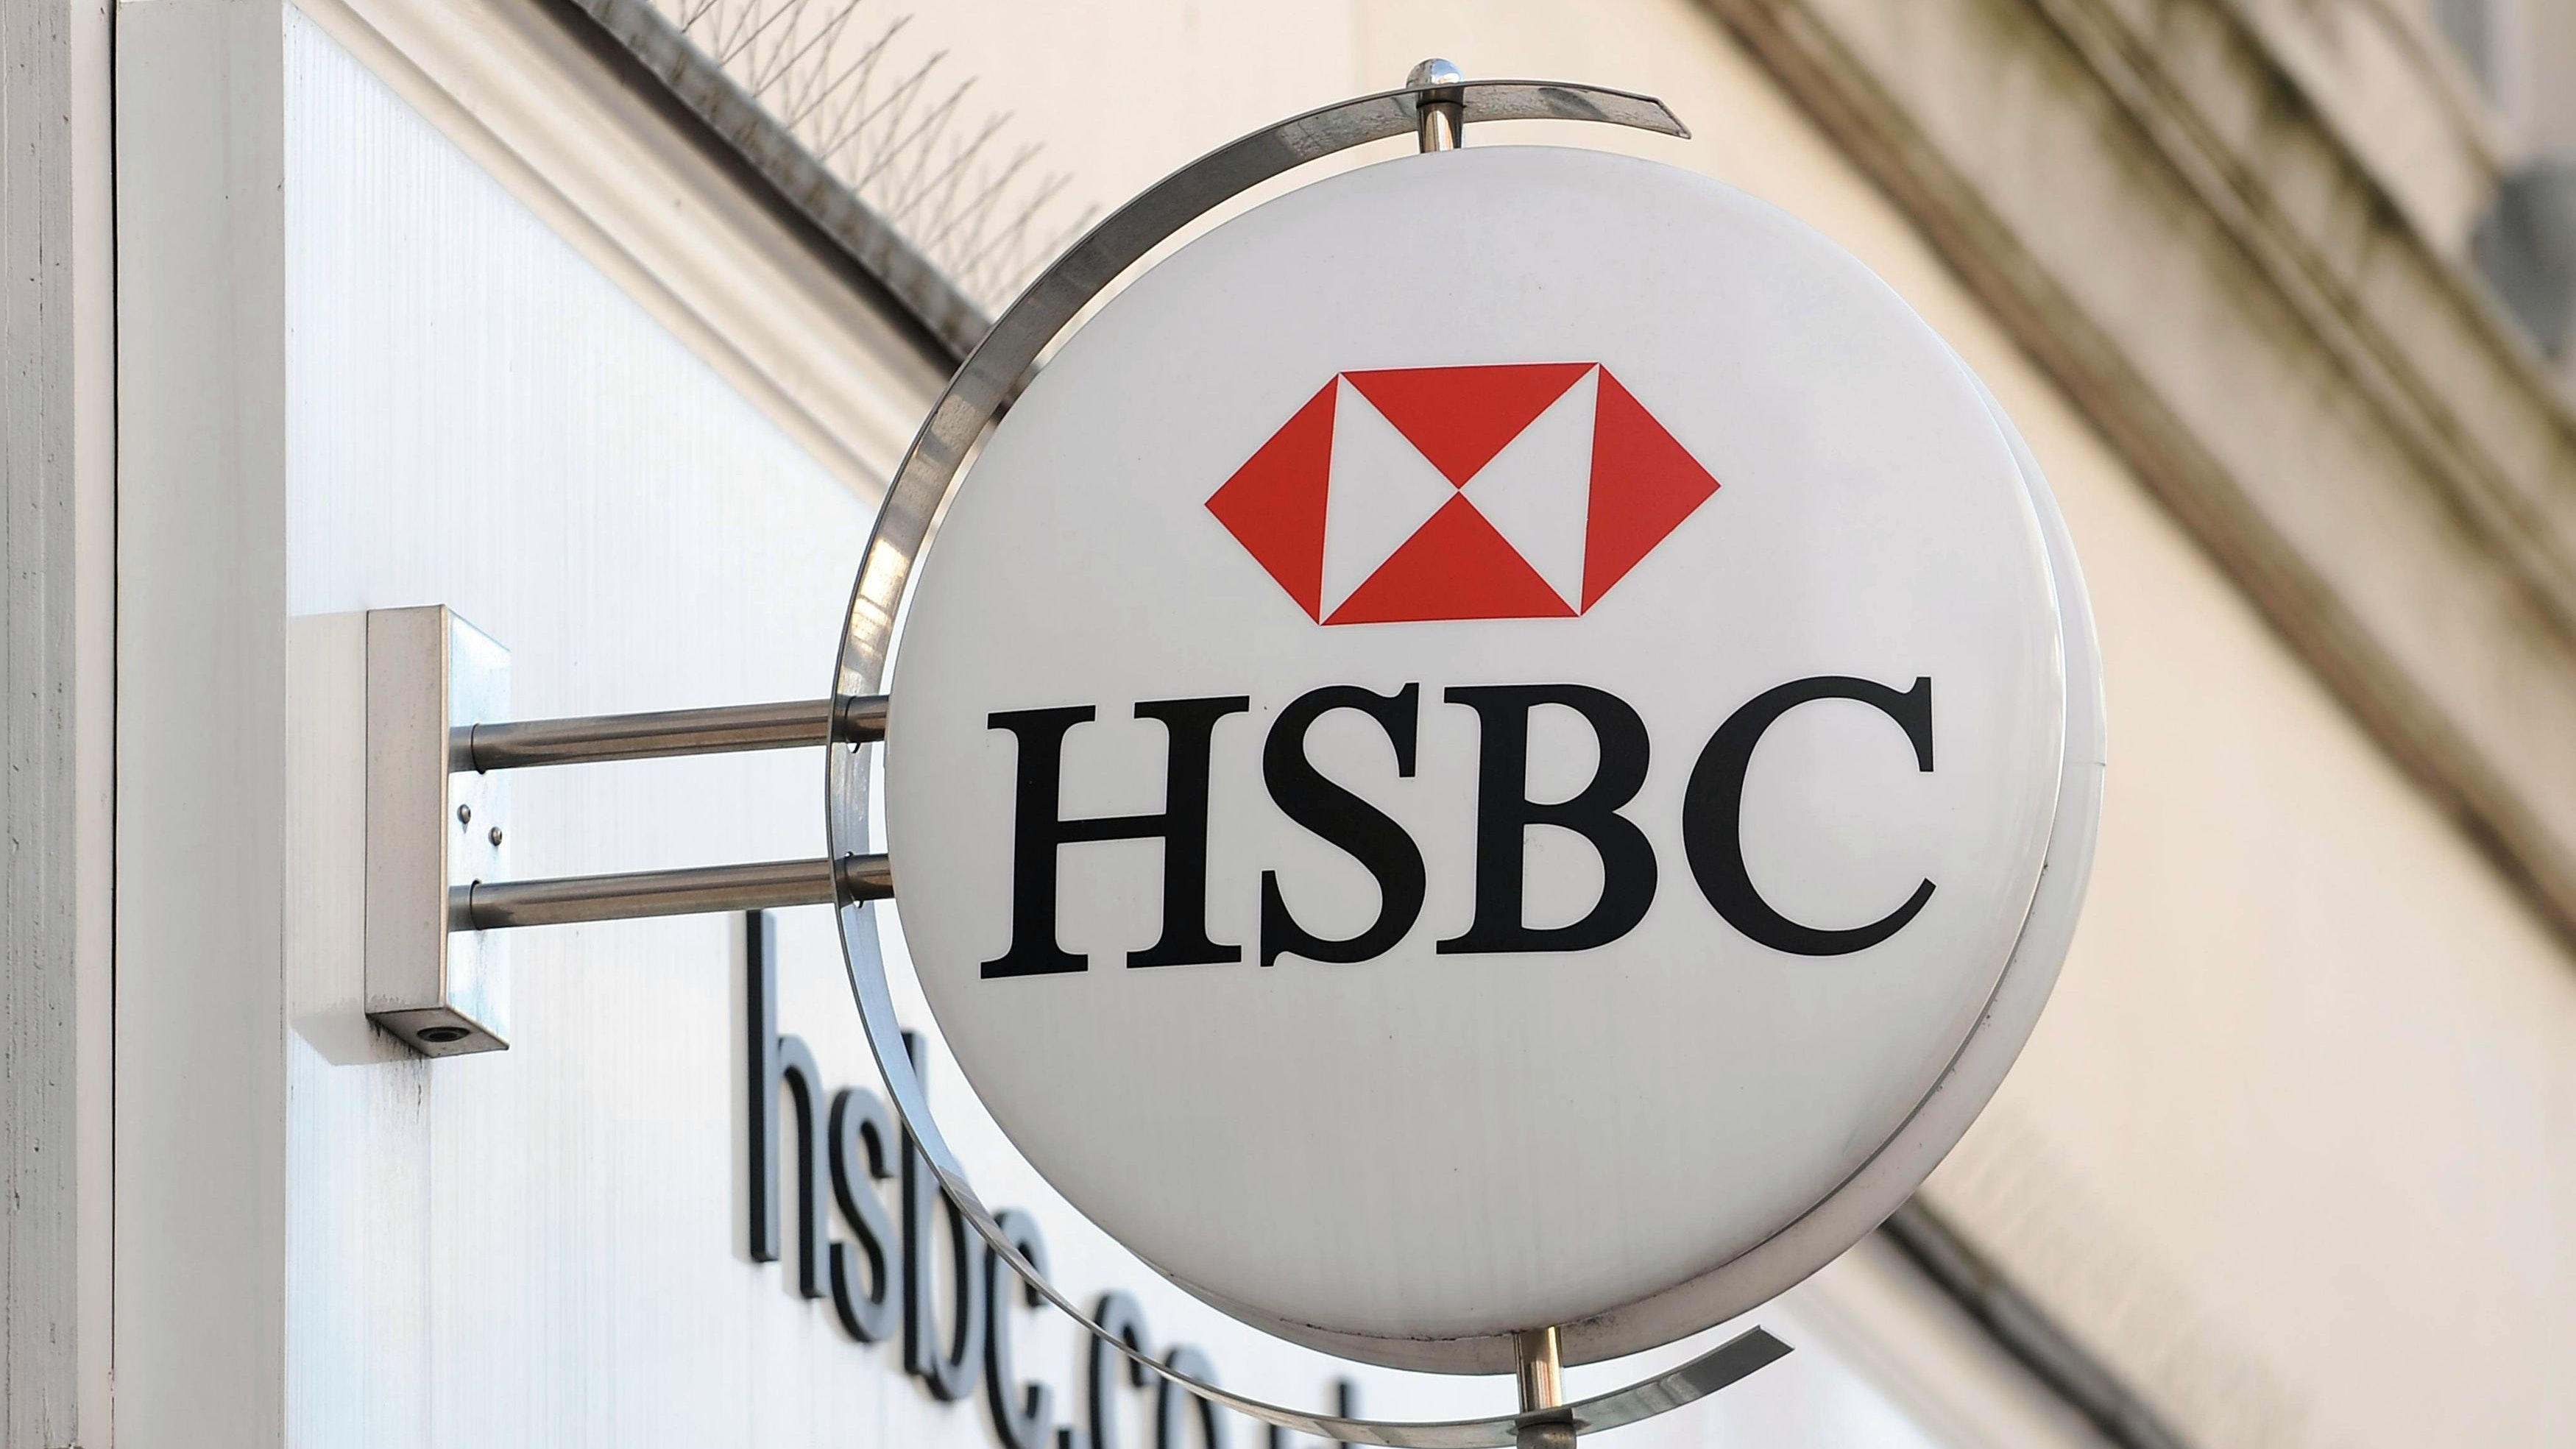 HSBC bosses probed over gender diversity and new energy